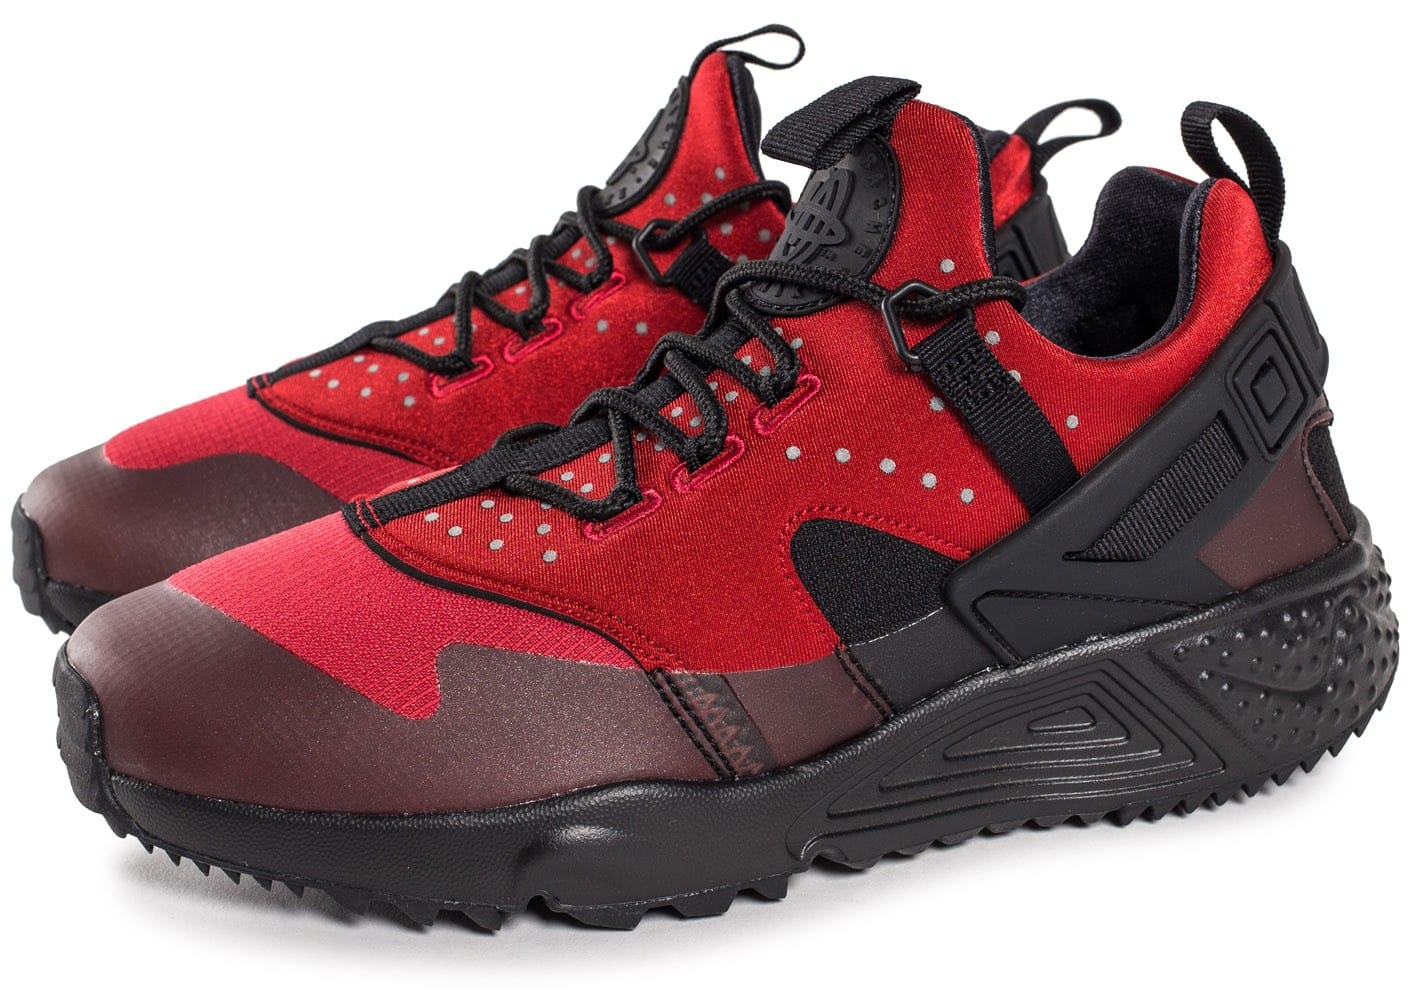 Huarache Chaussures Baskets Rouge Nike Homme Air Utility Chausport SqVUzMp